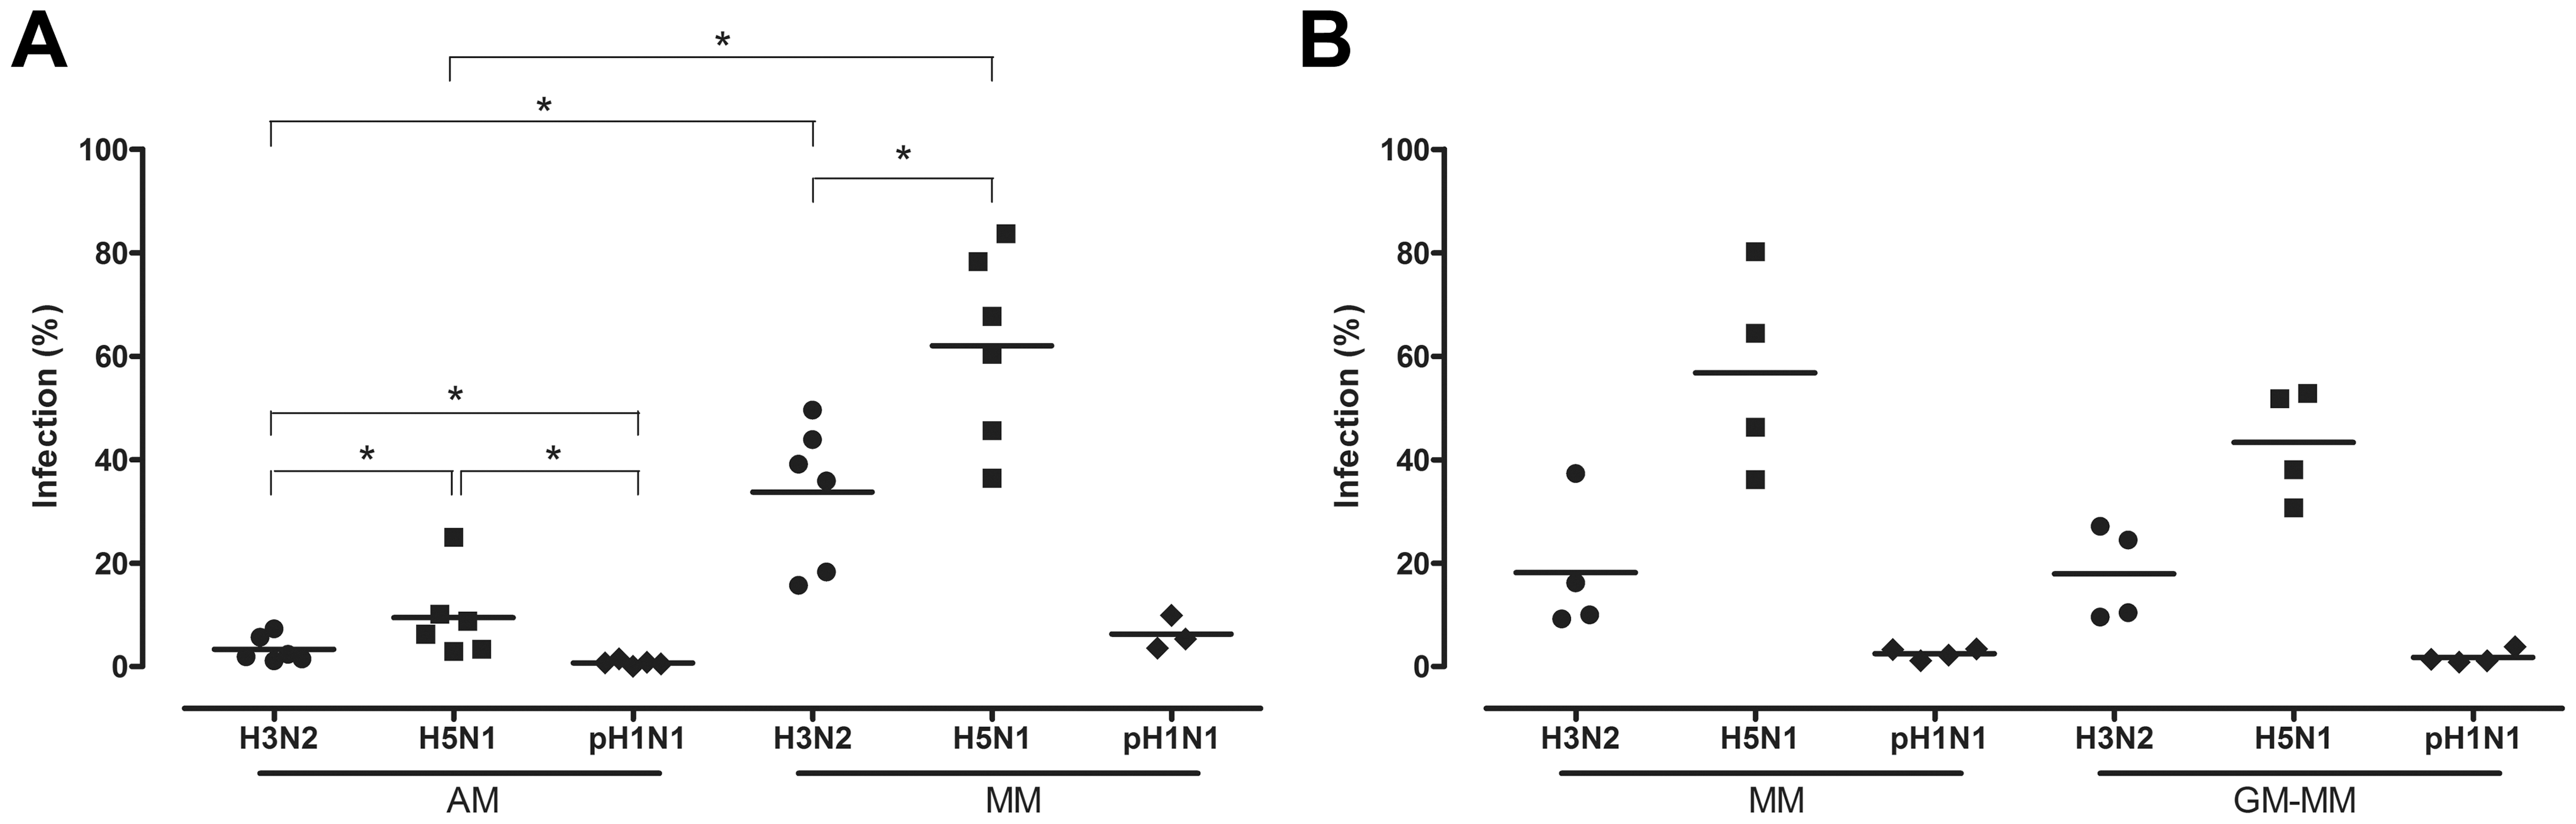 Percentage of alveolar macrophages and monocyte-derived macrophages infected with H3N2, H5N1 or H1N1 virus.